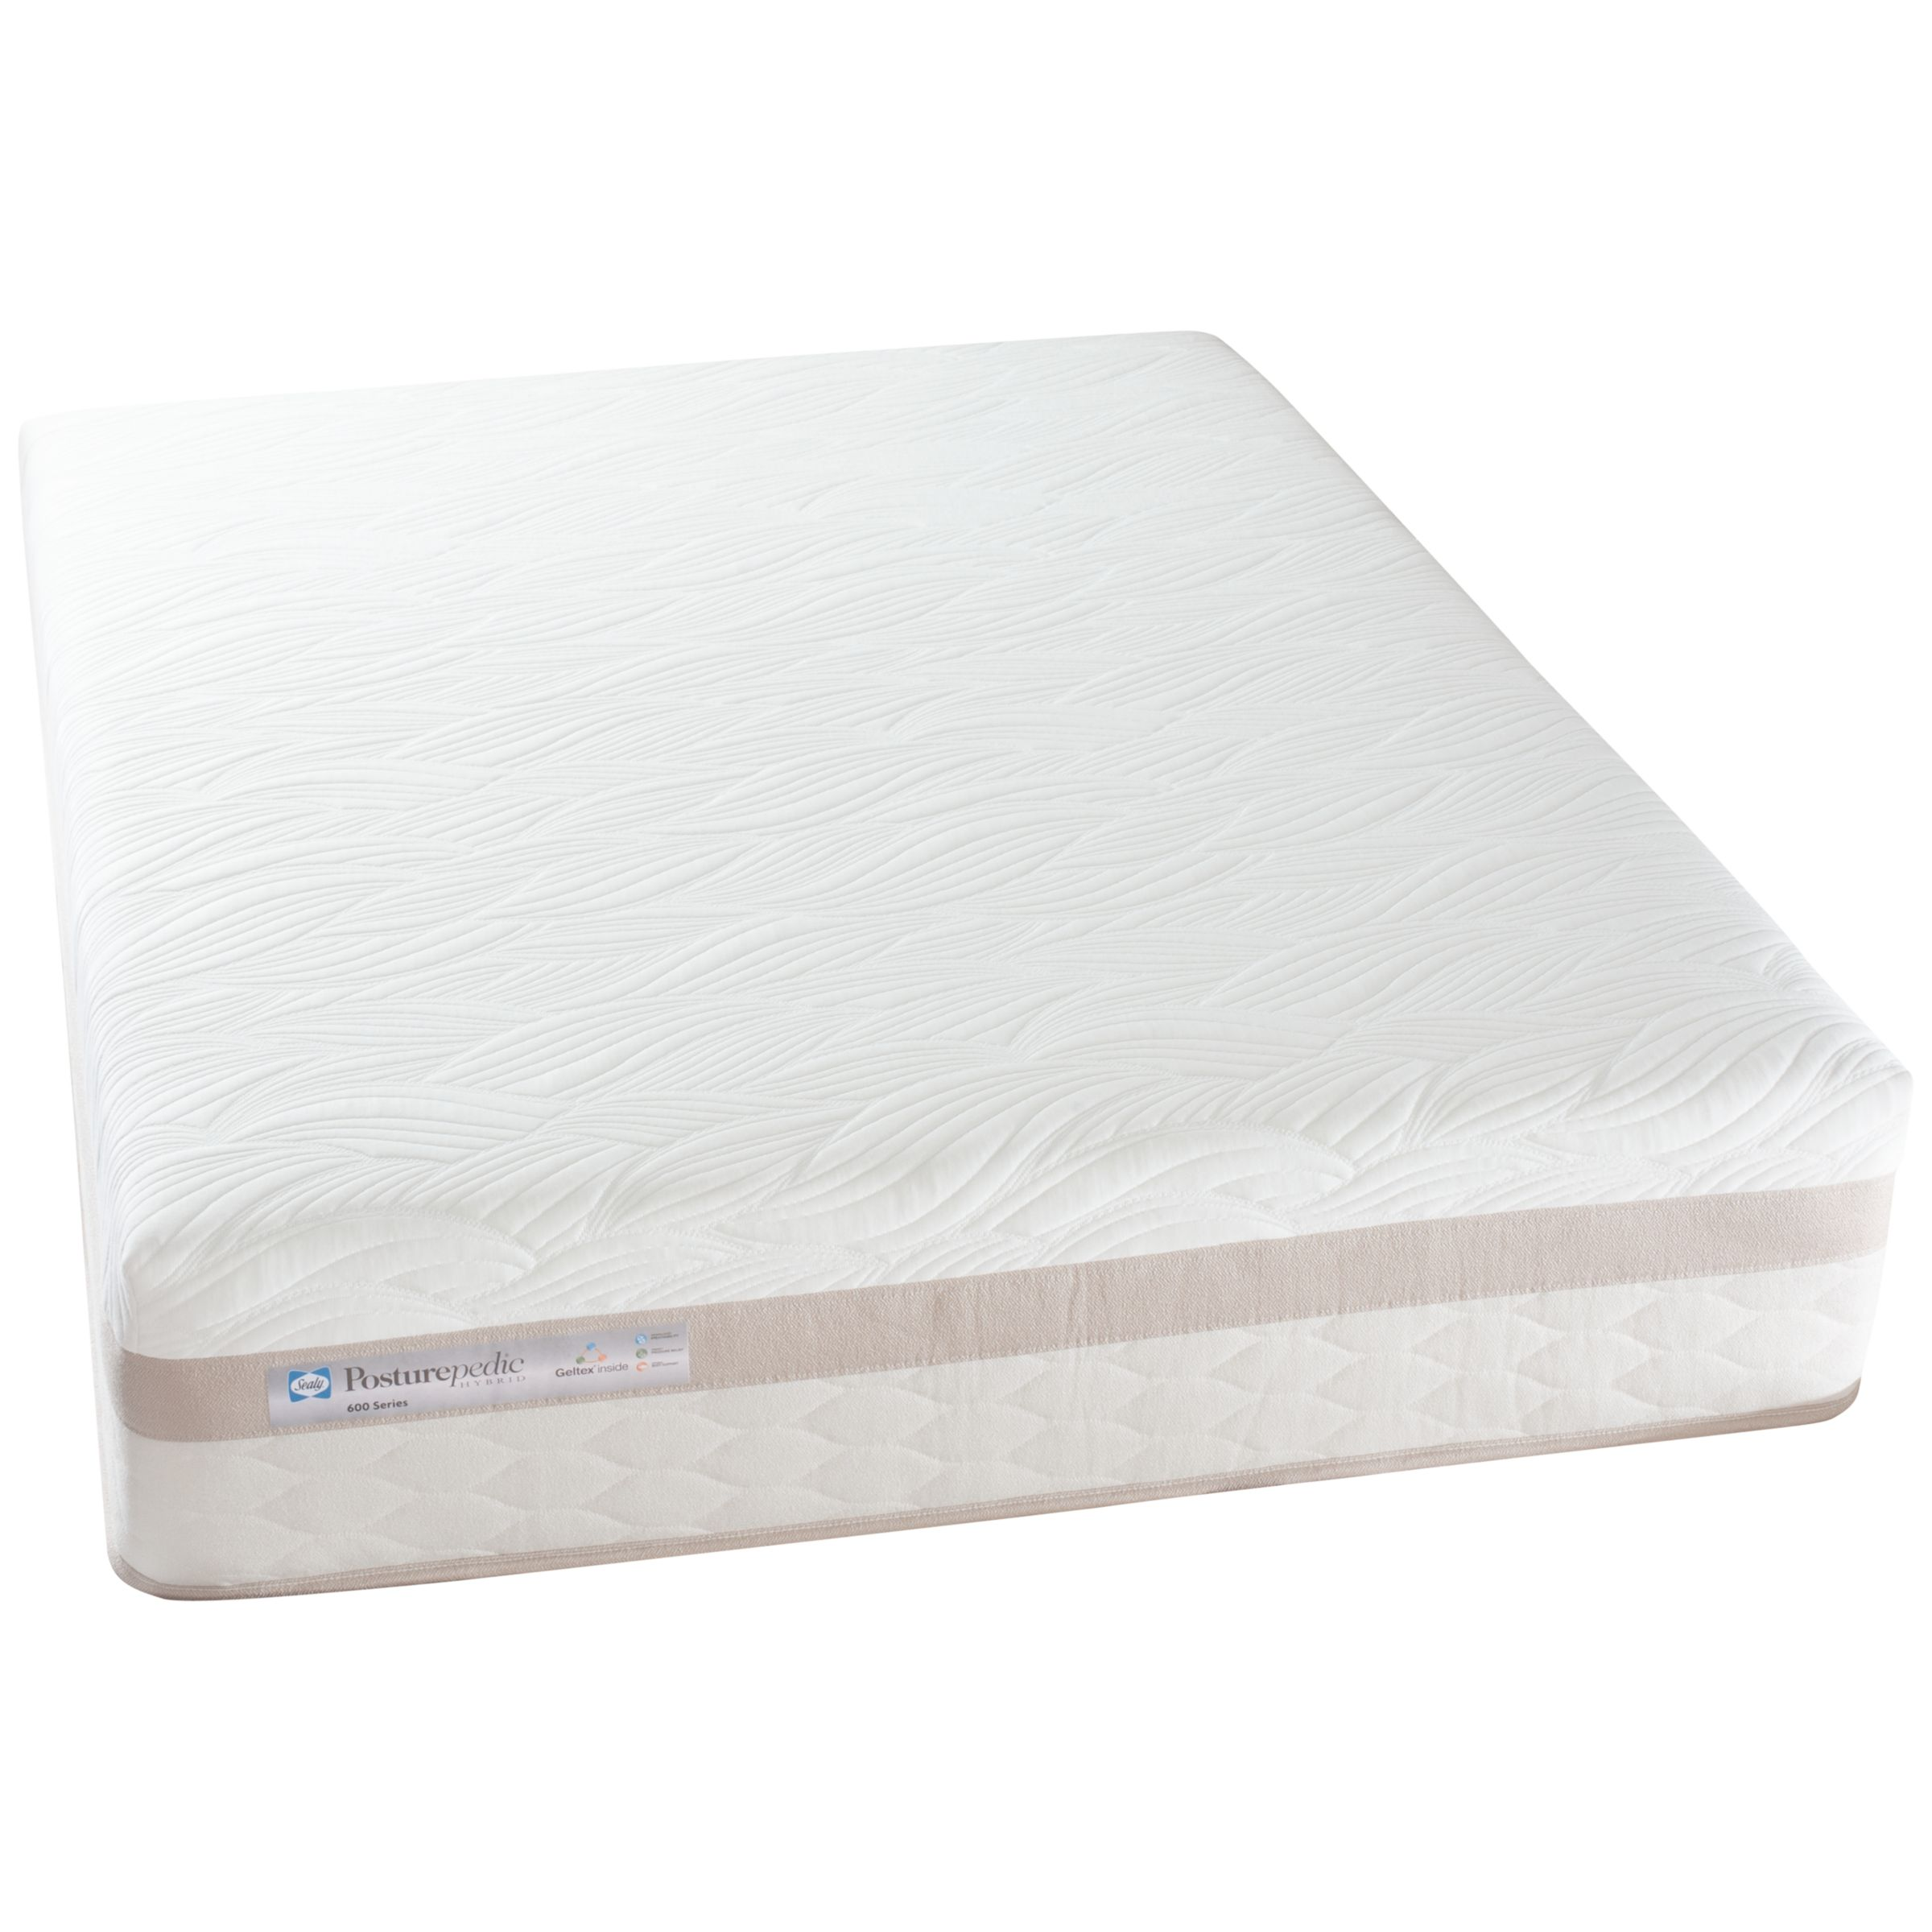 Sealy Posturepedic Hybrid Series 600 Mattress, Kingsize